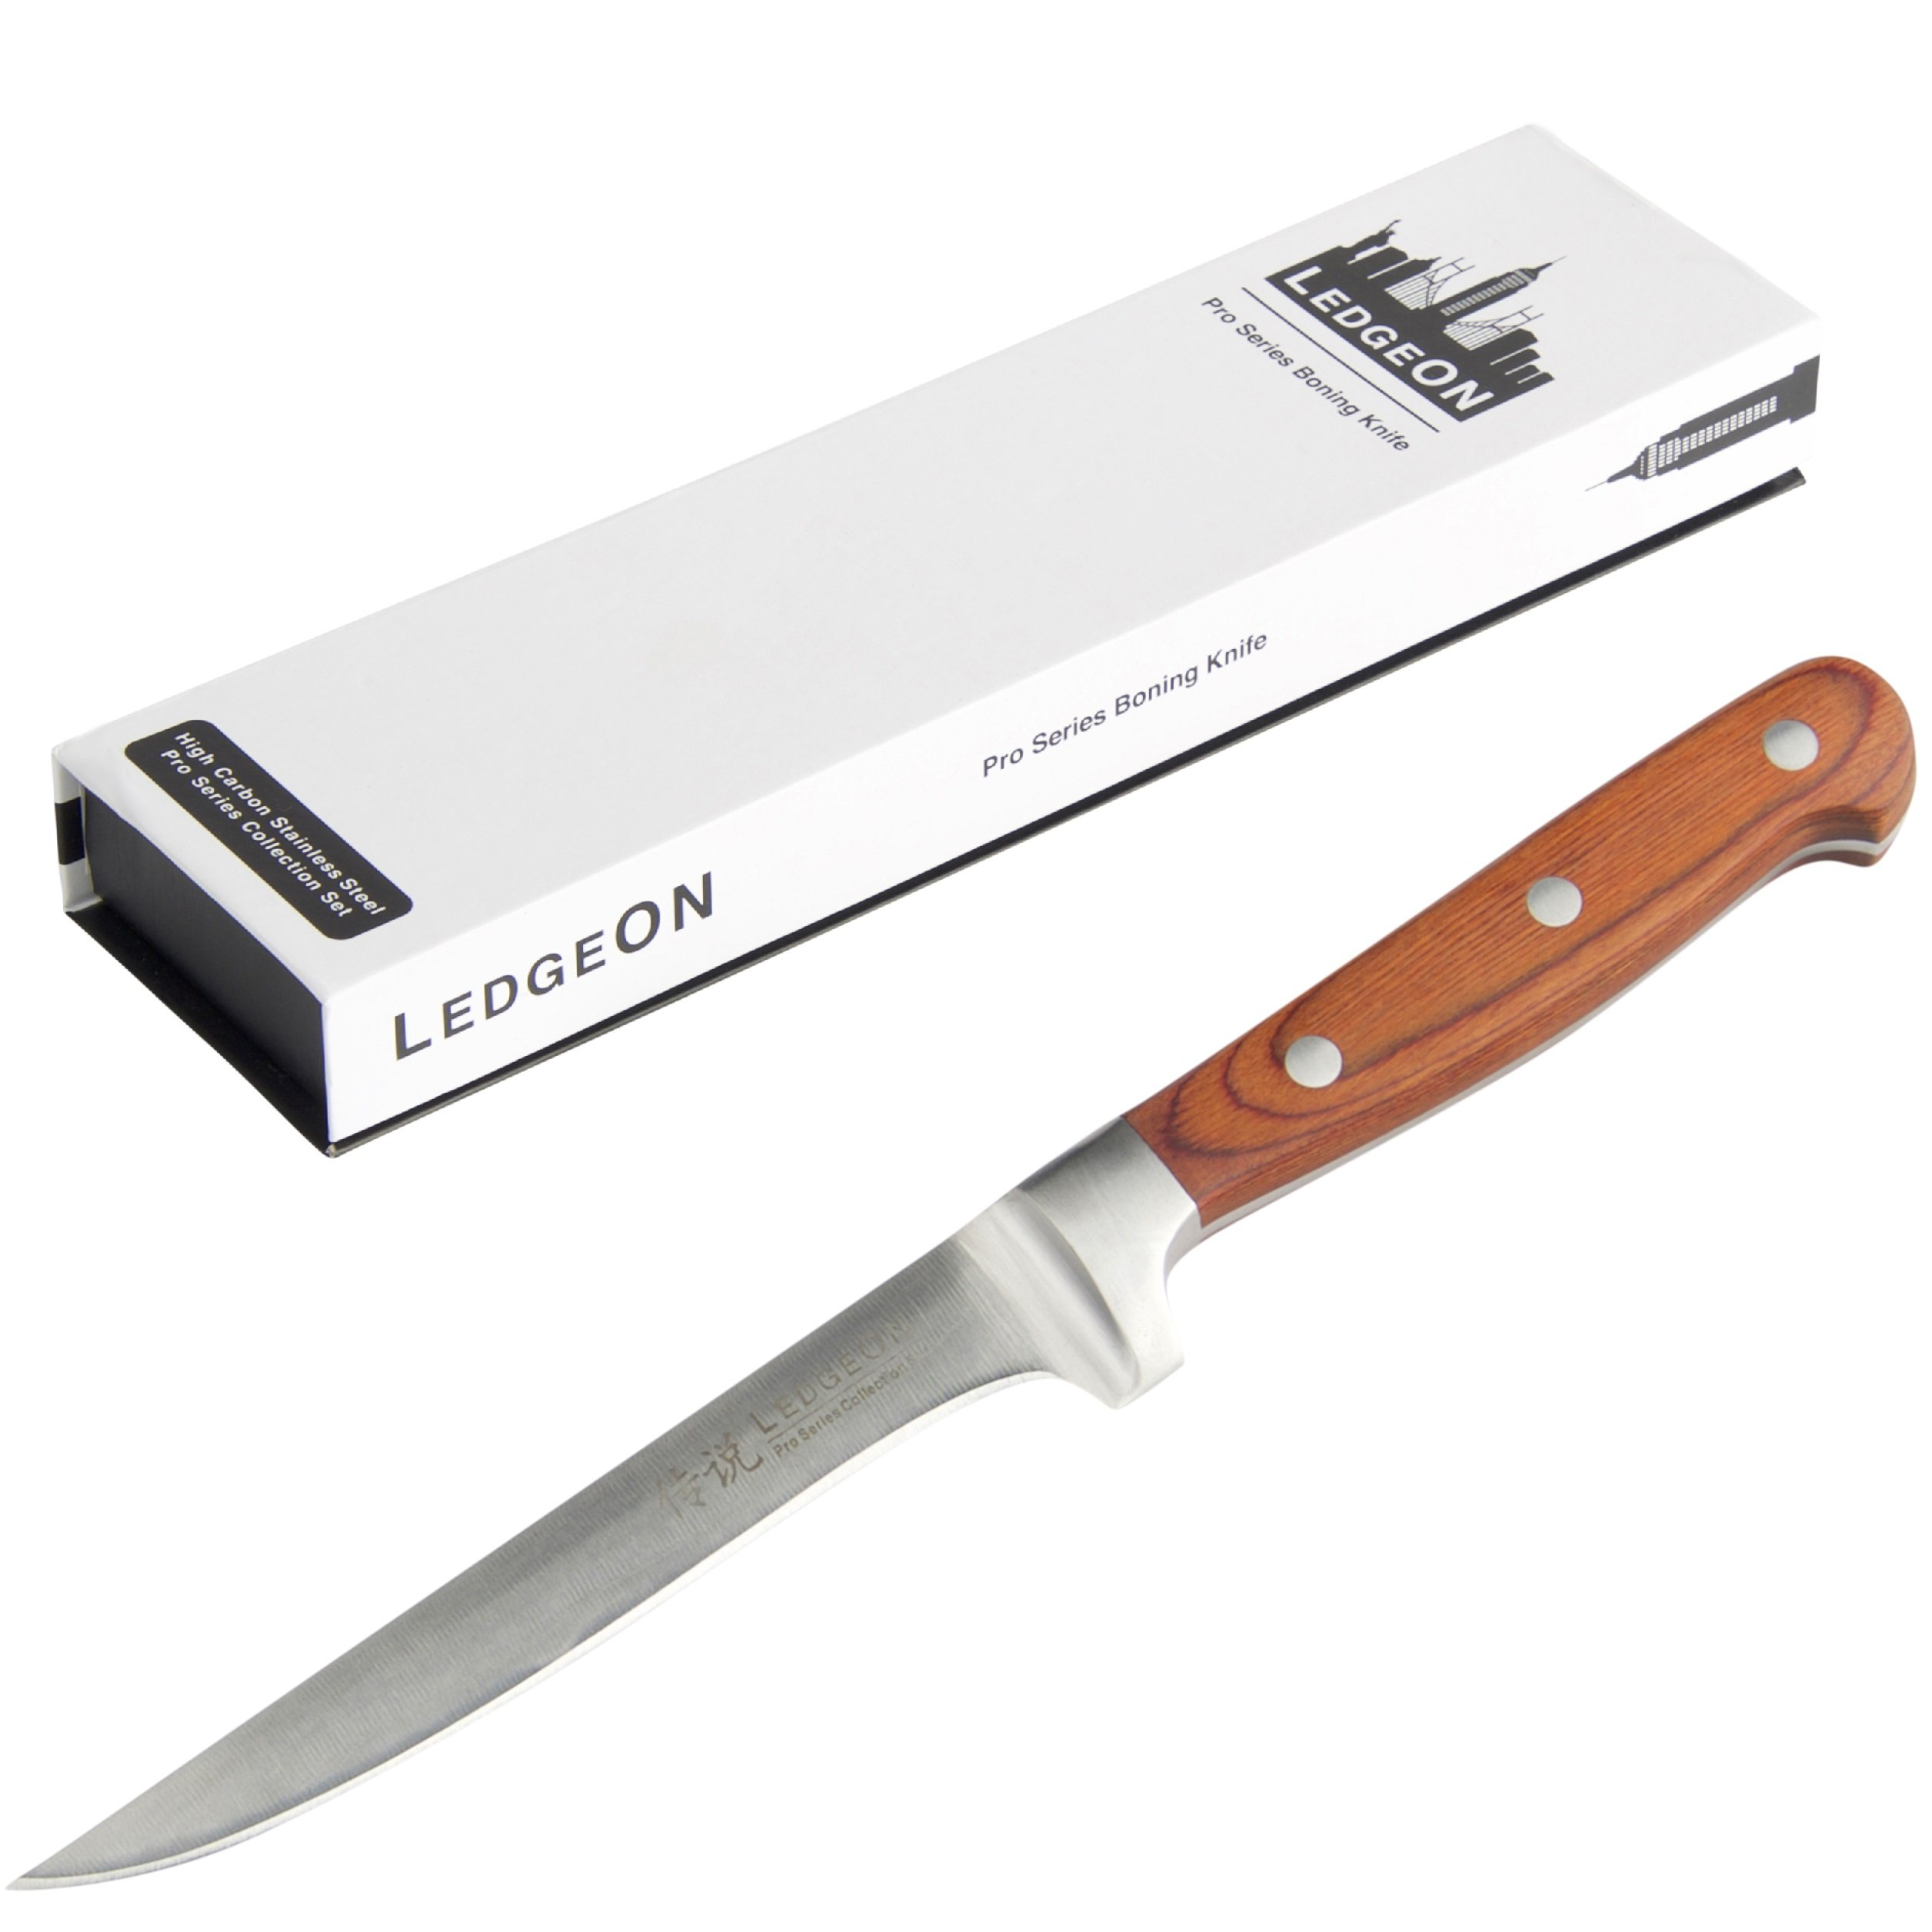 LedgeON 6'' Professional Boning Knife - Pro Series - High Carbon Stainless Steel Blade - Wood Handle